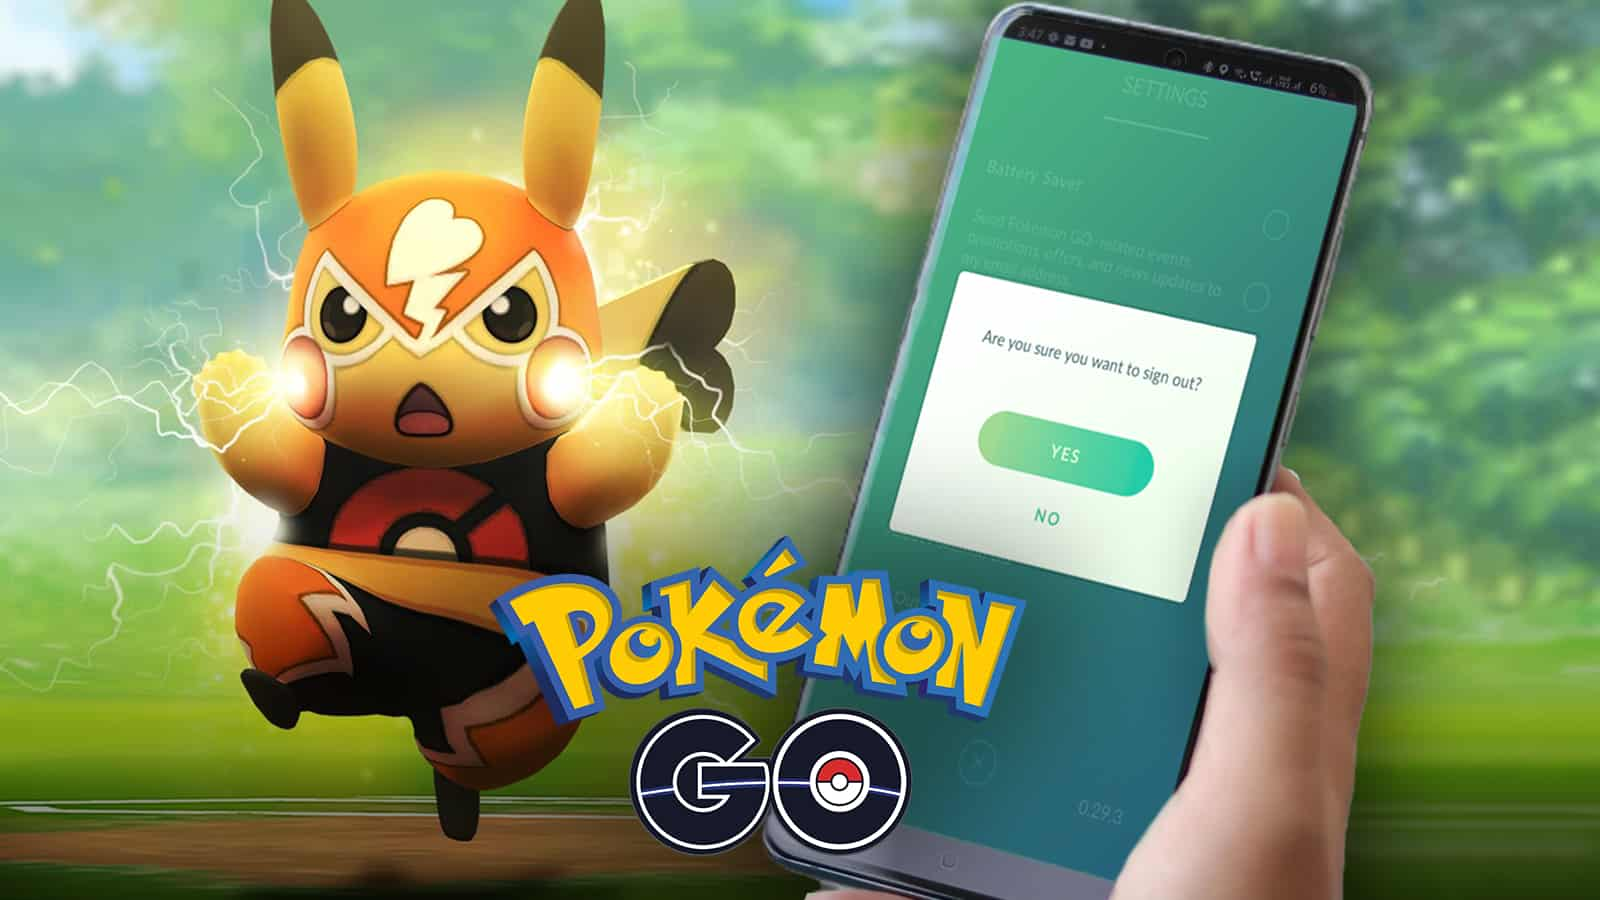 pokemon-go-sign-out-image